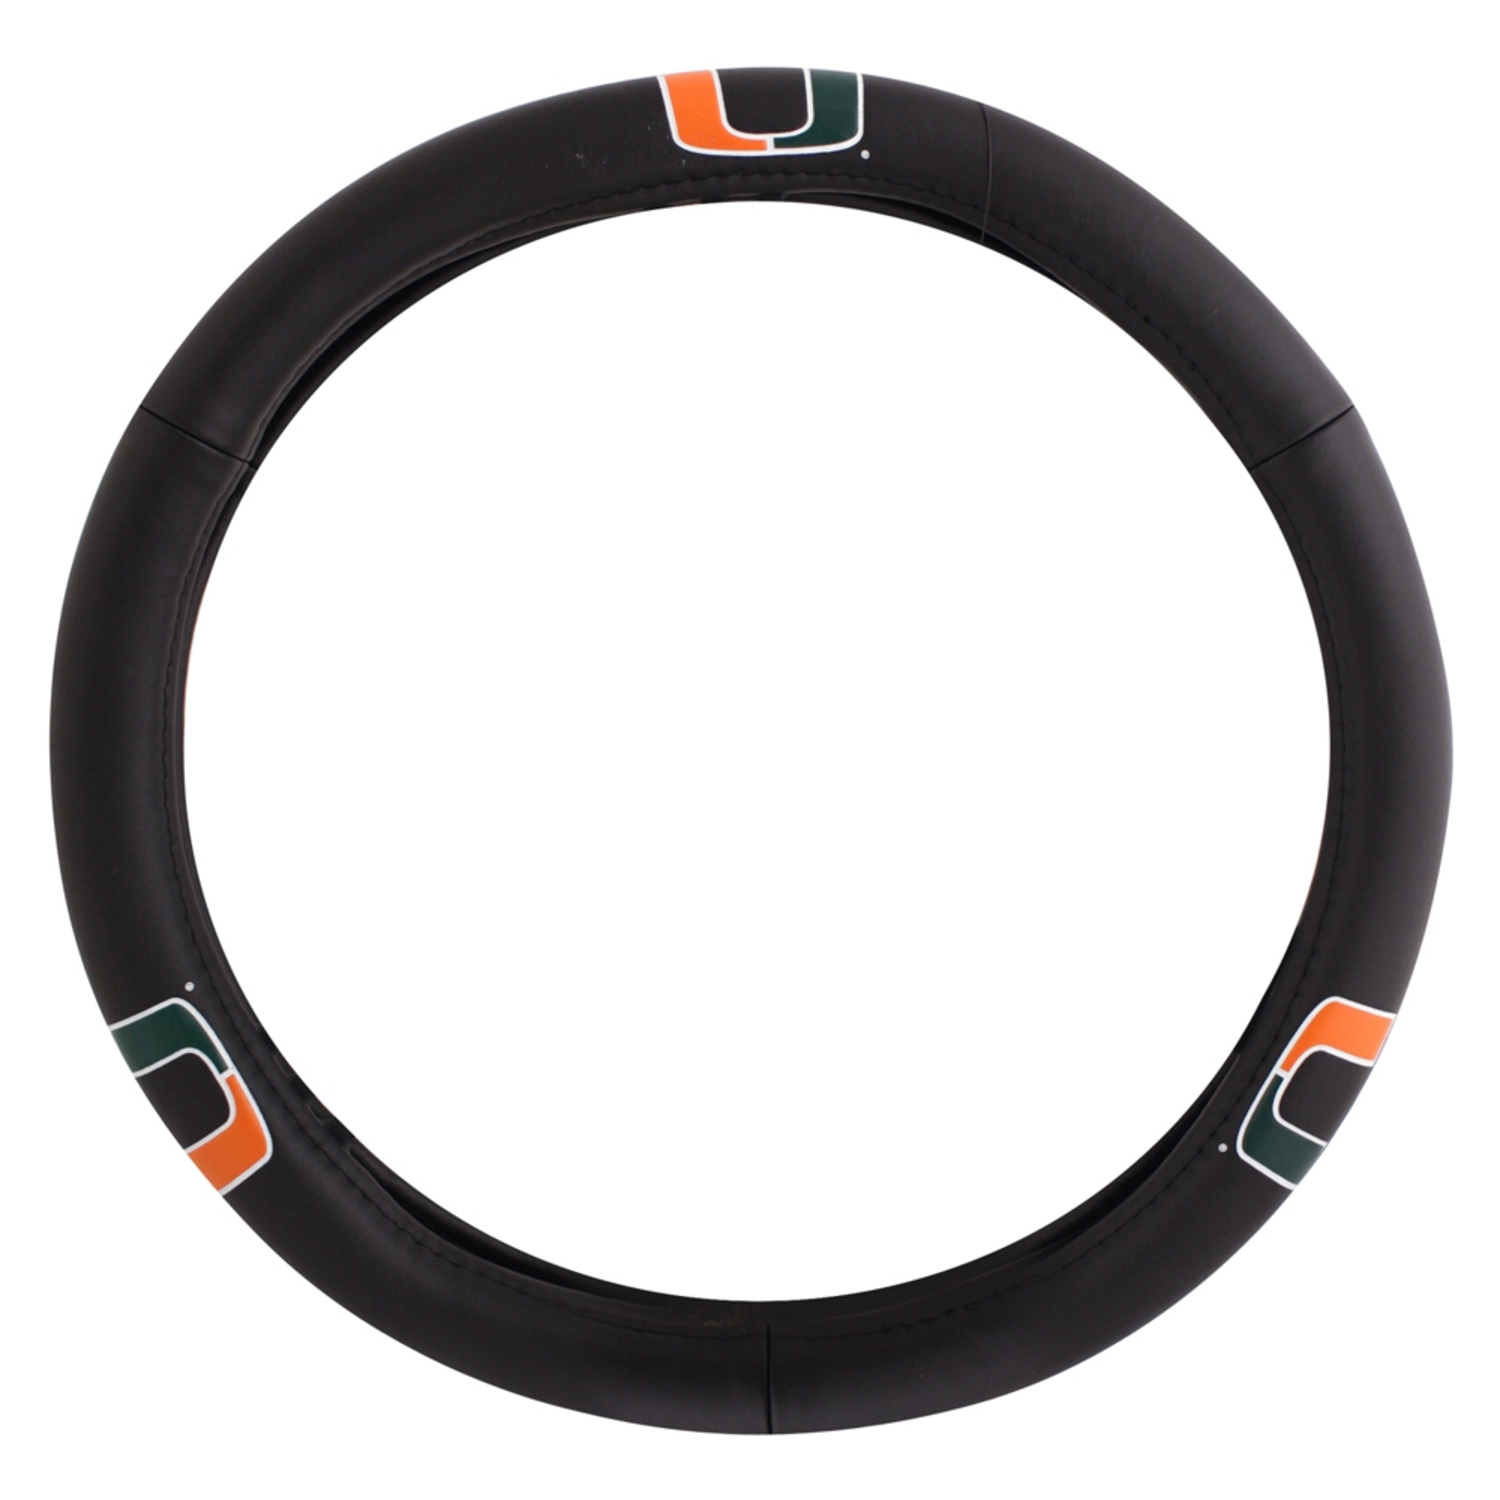 Black Leather Car Auto Steering Wheel Cover, University of Miami Hurricanes